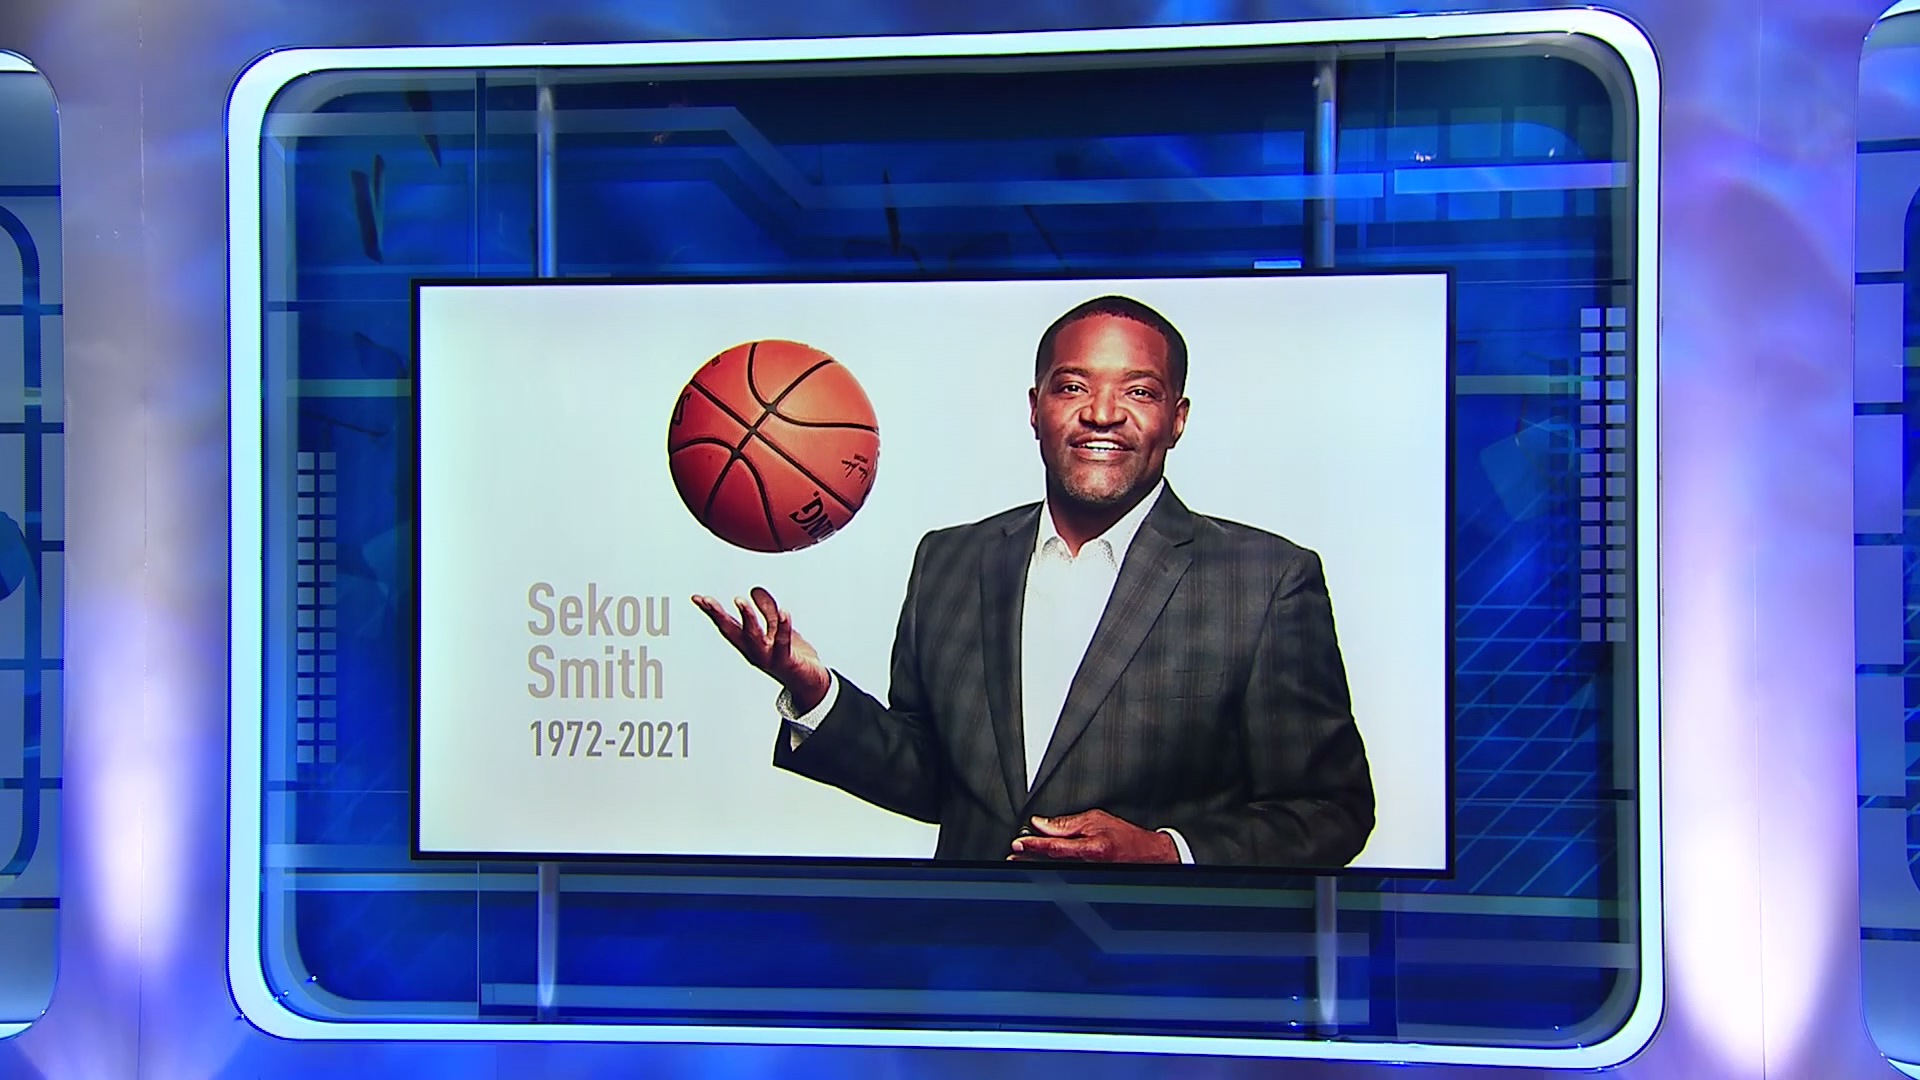 NBA family, colleagues pay tribute to Sekou Smith